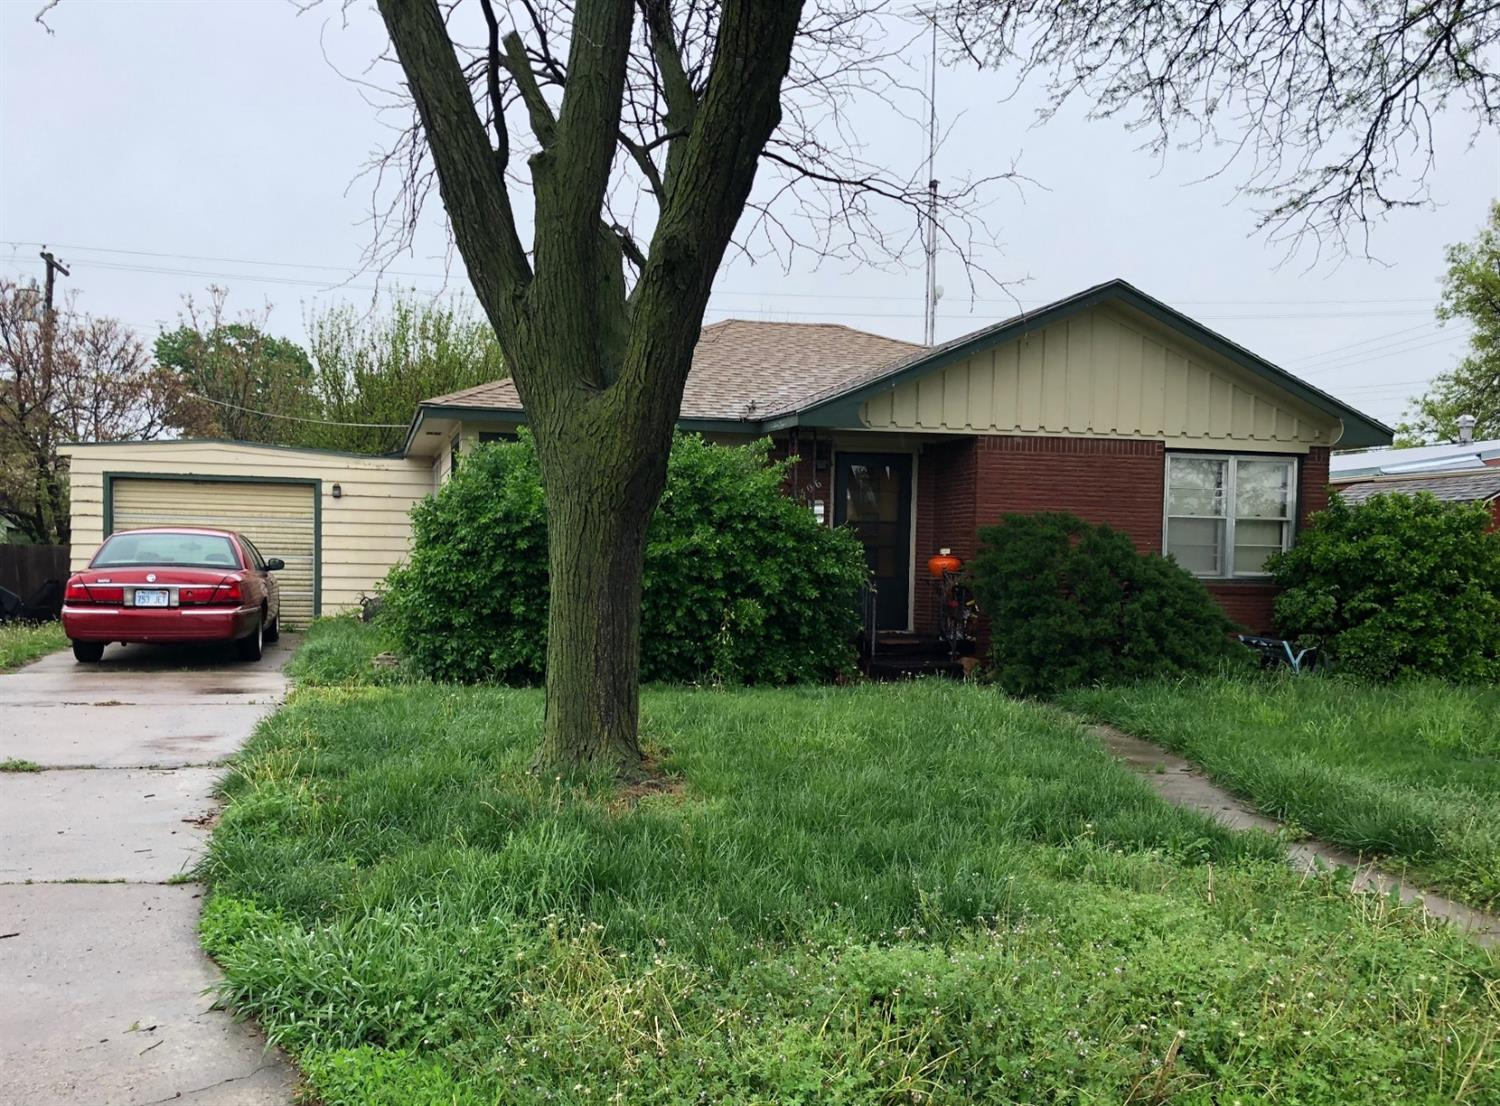 Good investment or fix up property. Well built 2 bedroom home with a good location.